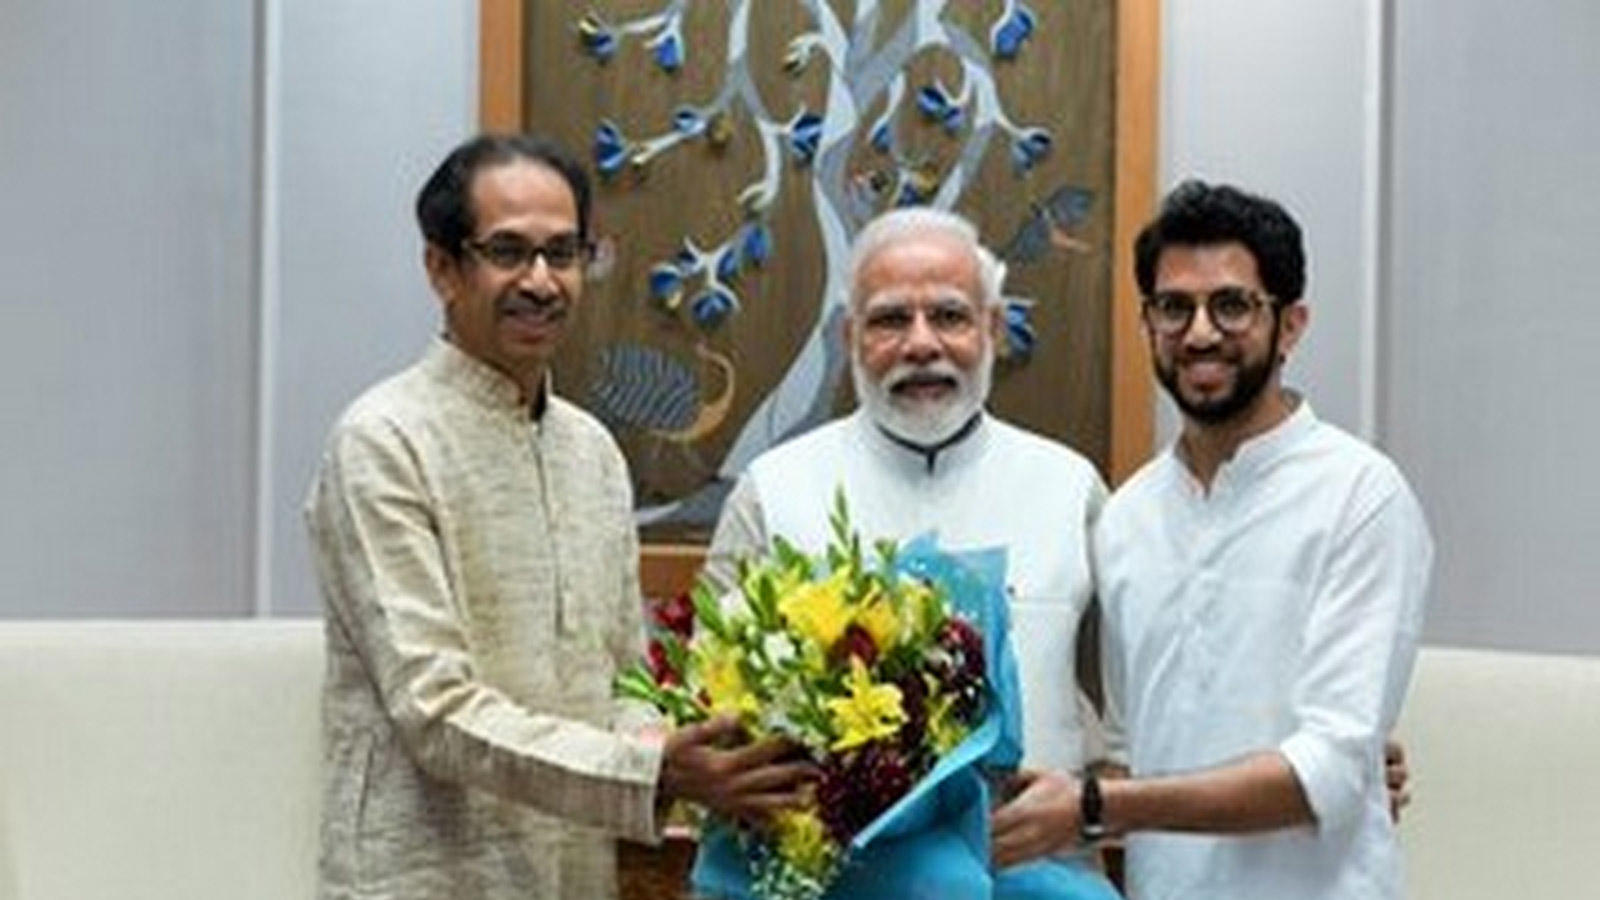 maharashtra-chief-minister-uddhav-thackeray-meets-pm-narendra-modi-in-delhi